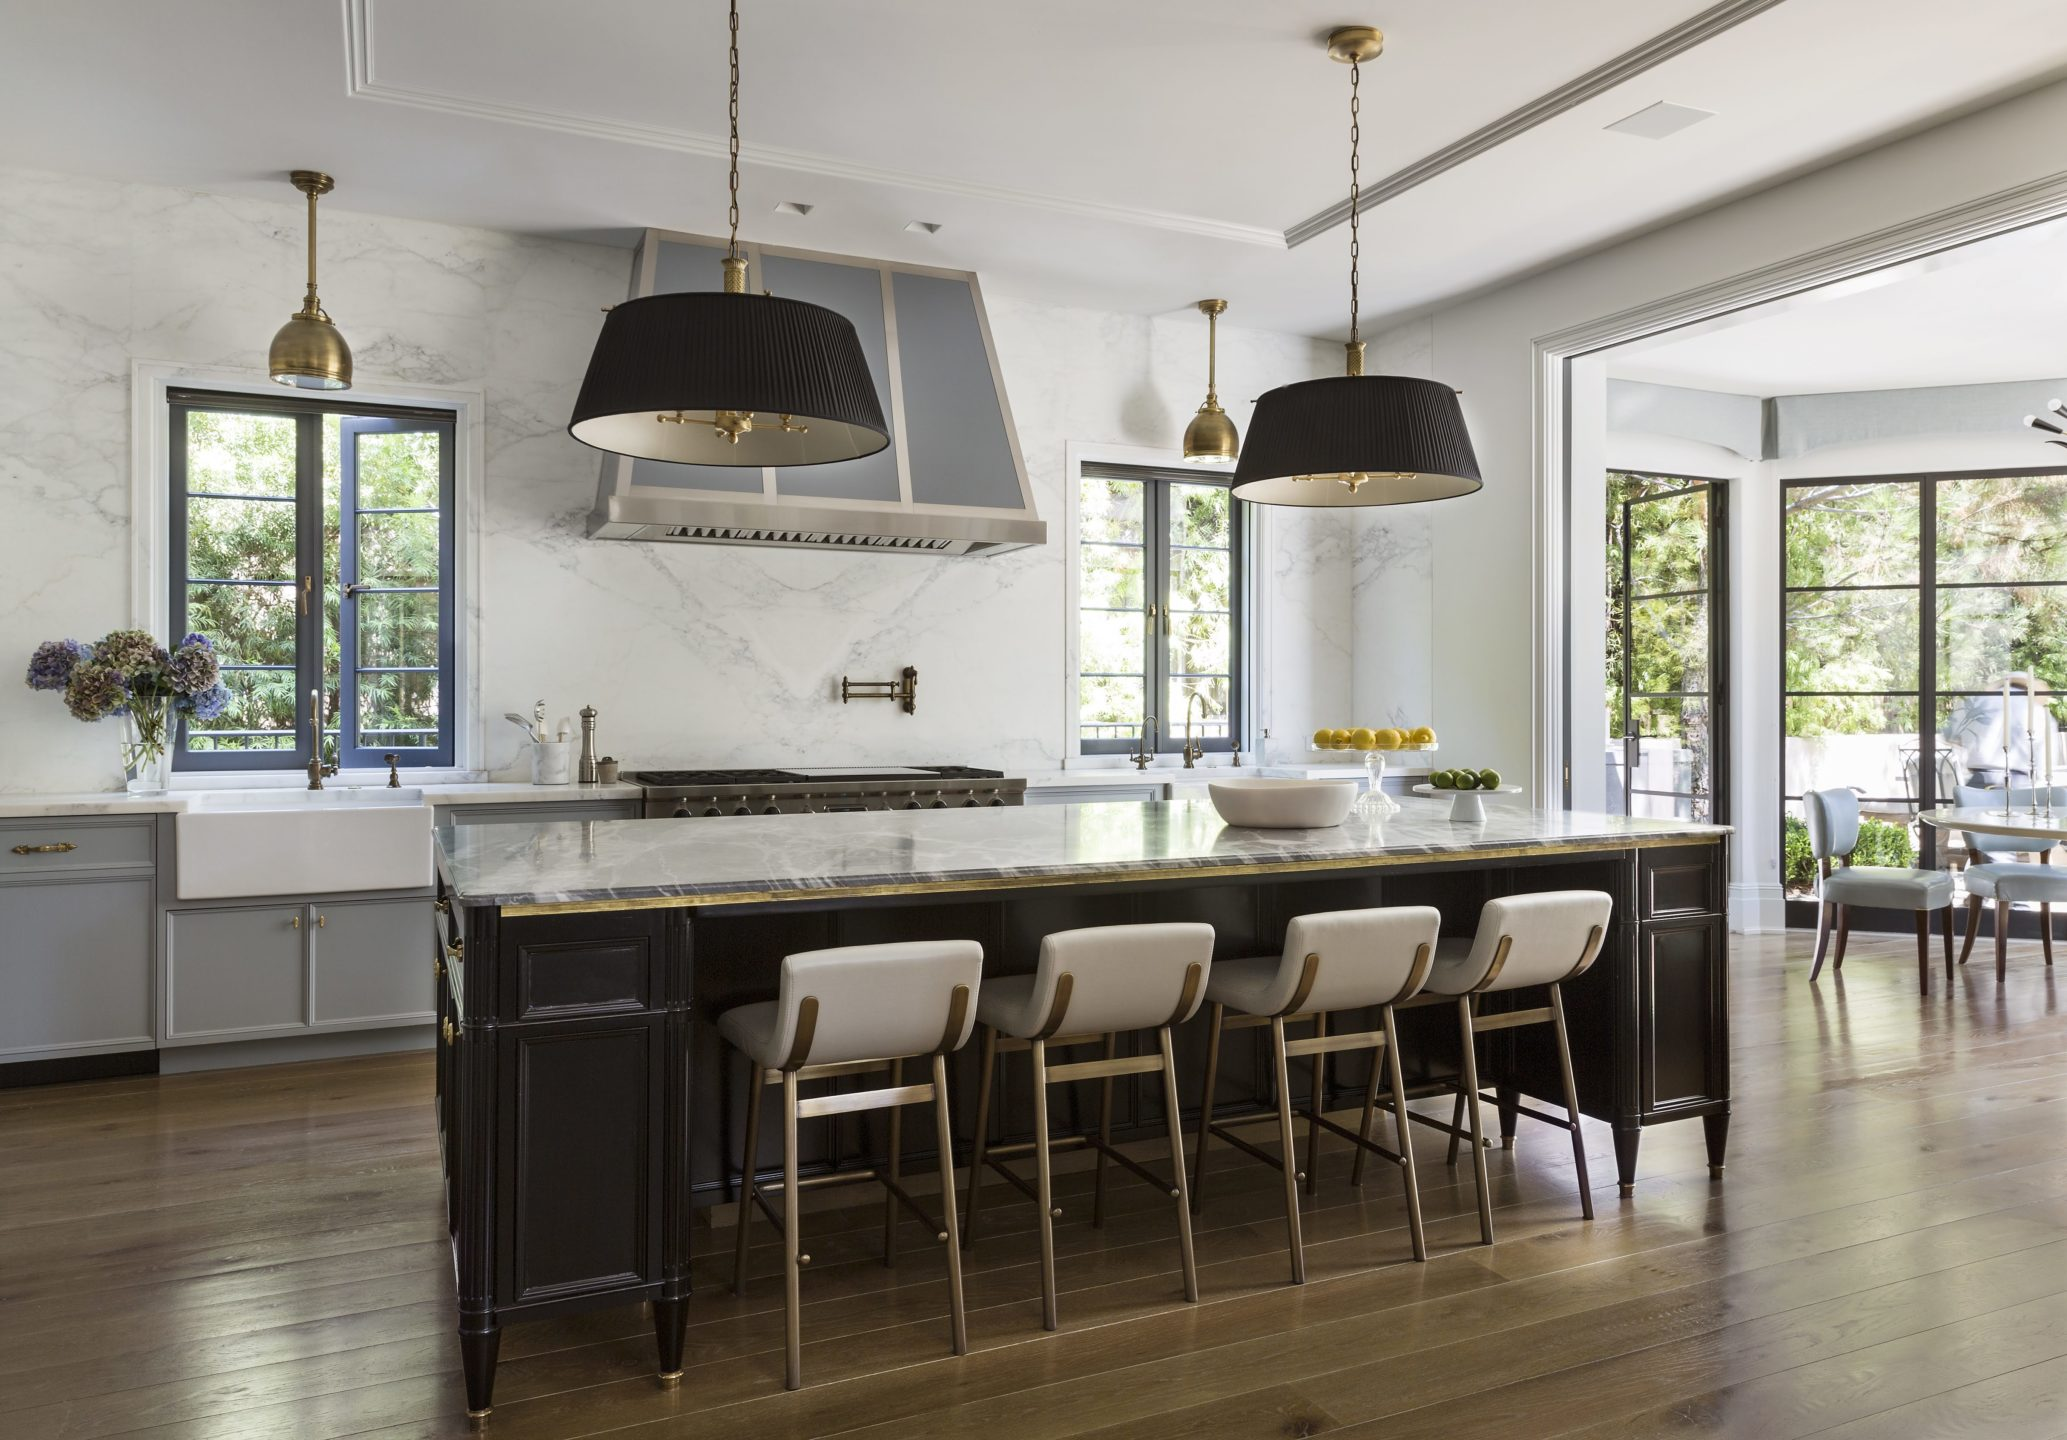 studio-william-hefner-Kohn__Kitchen__01__wide